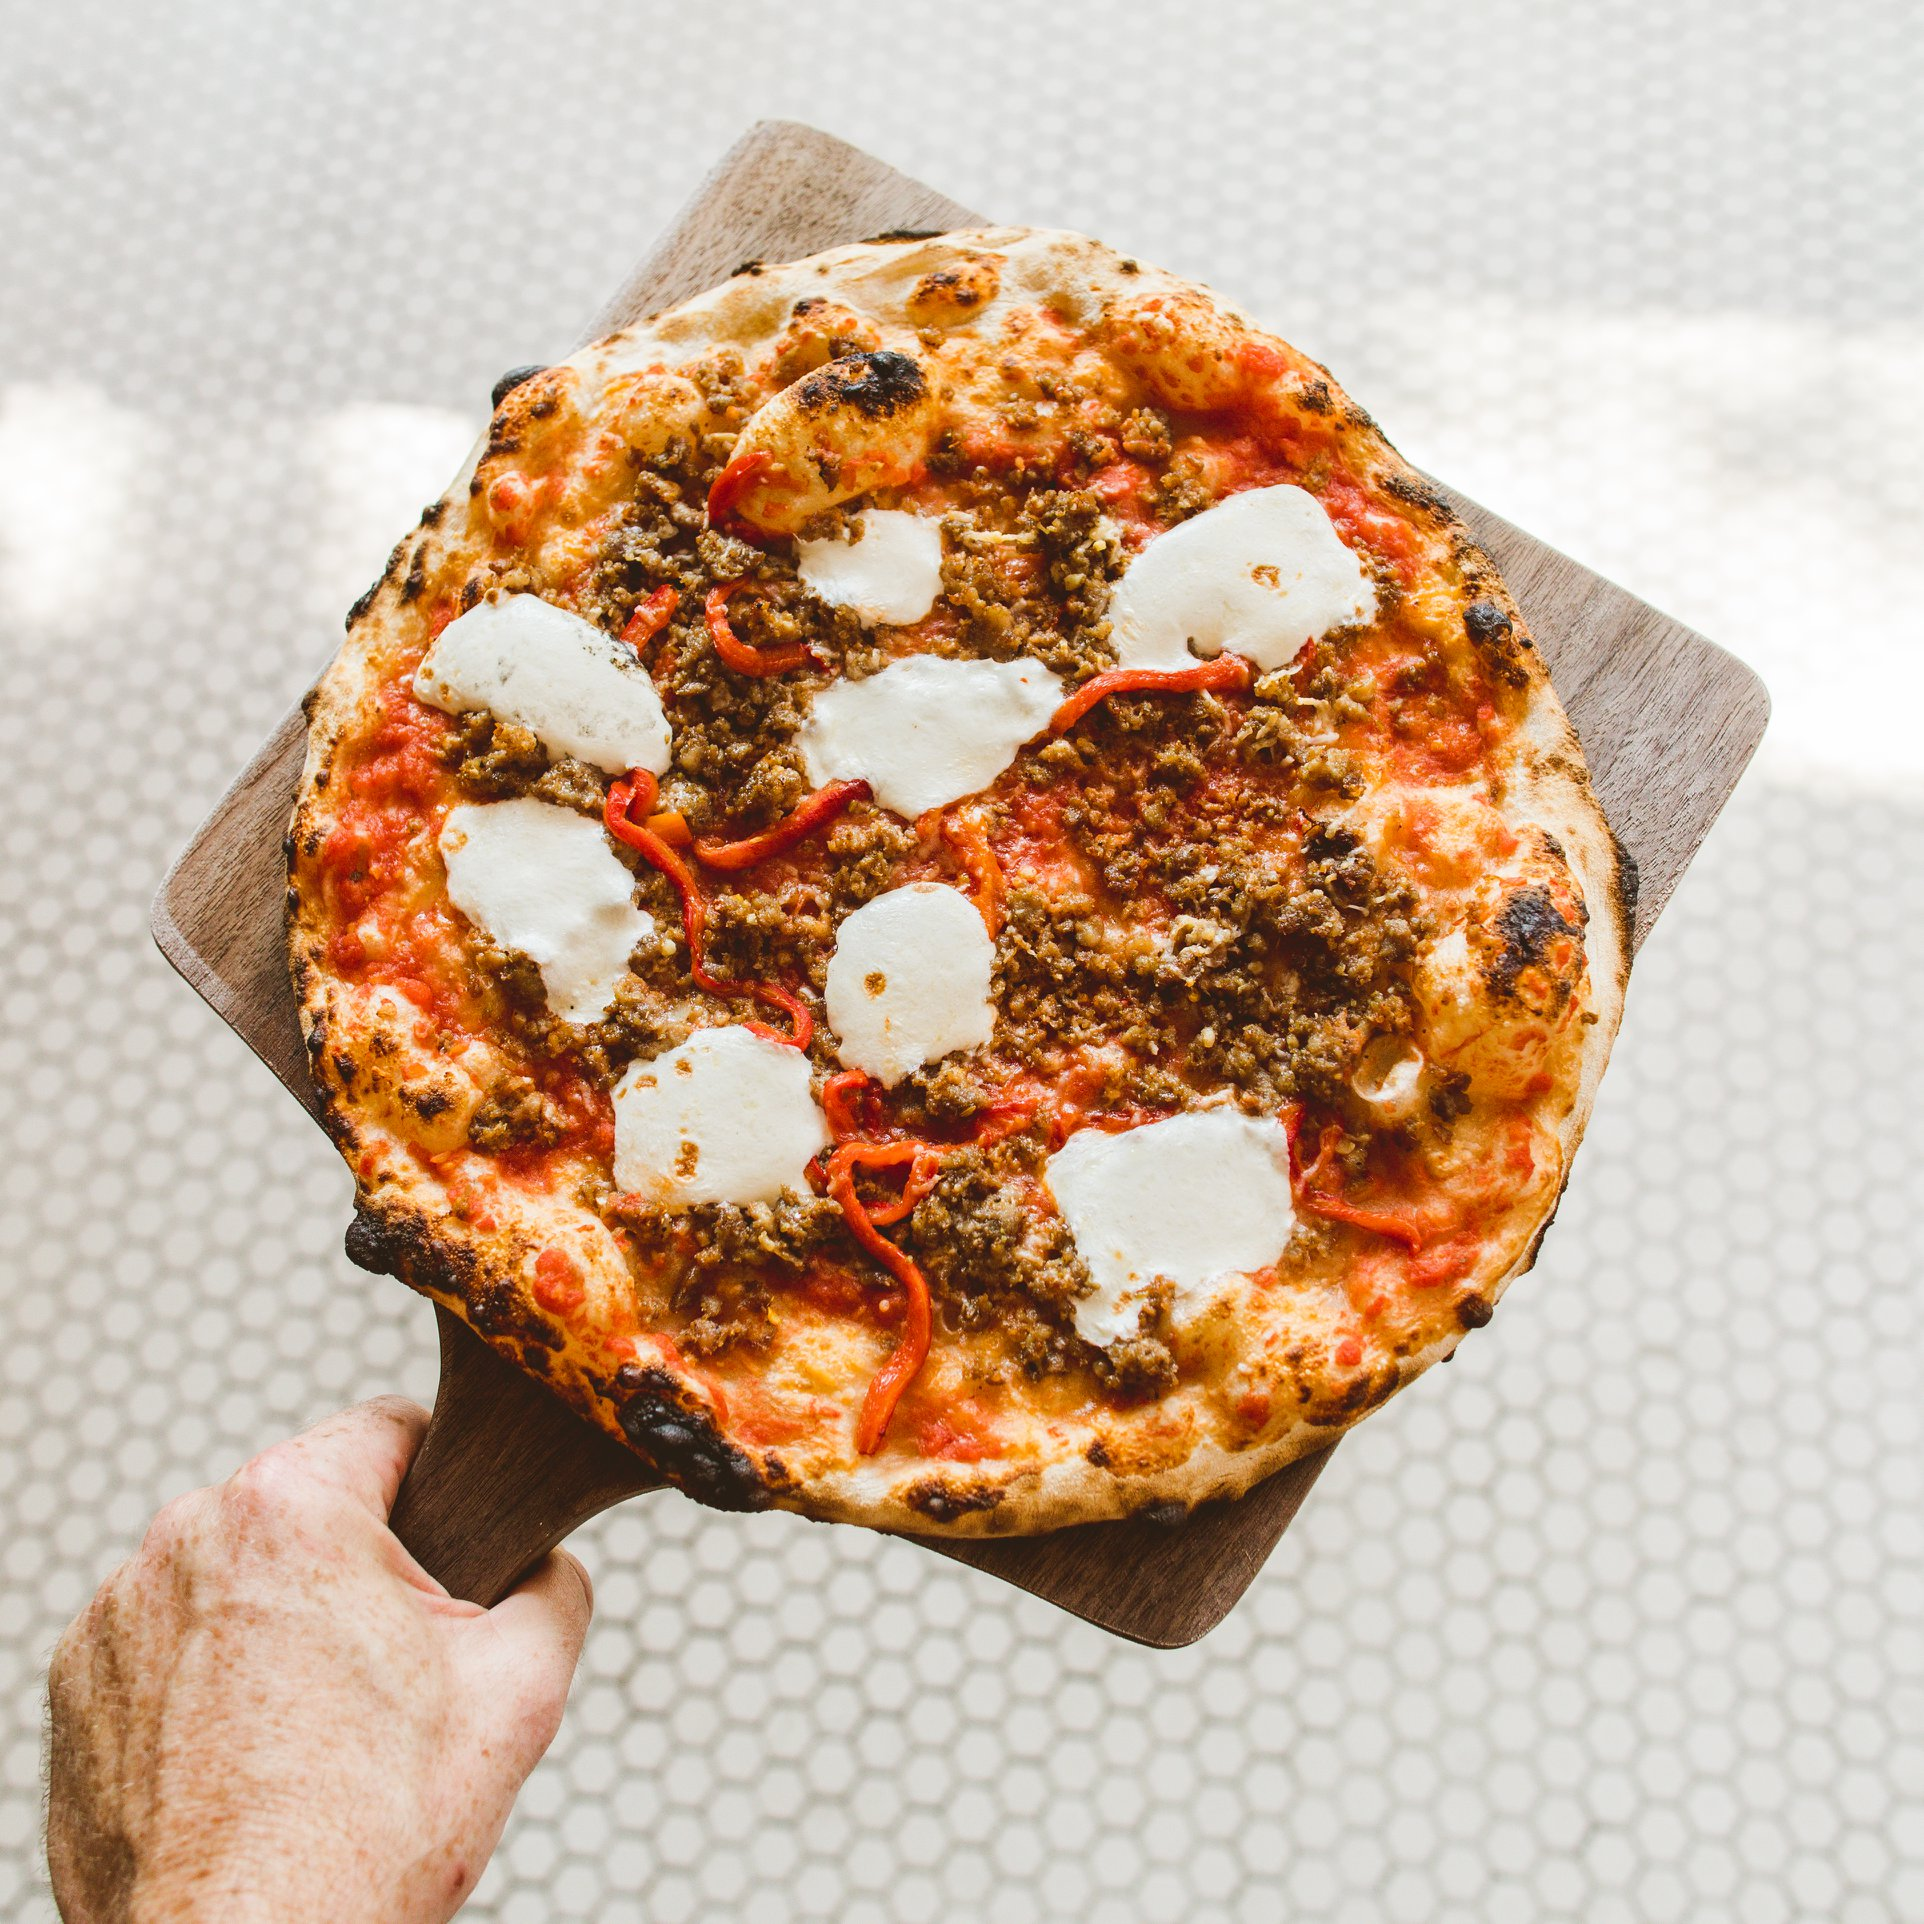 The fennel sausage pizza at the Backspace